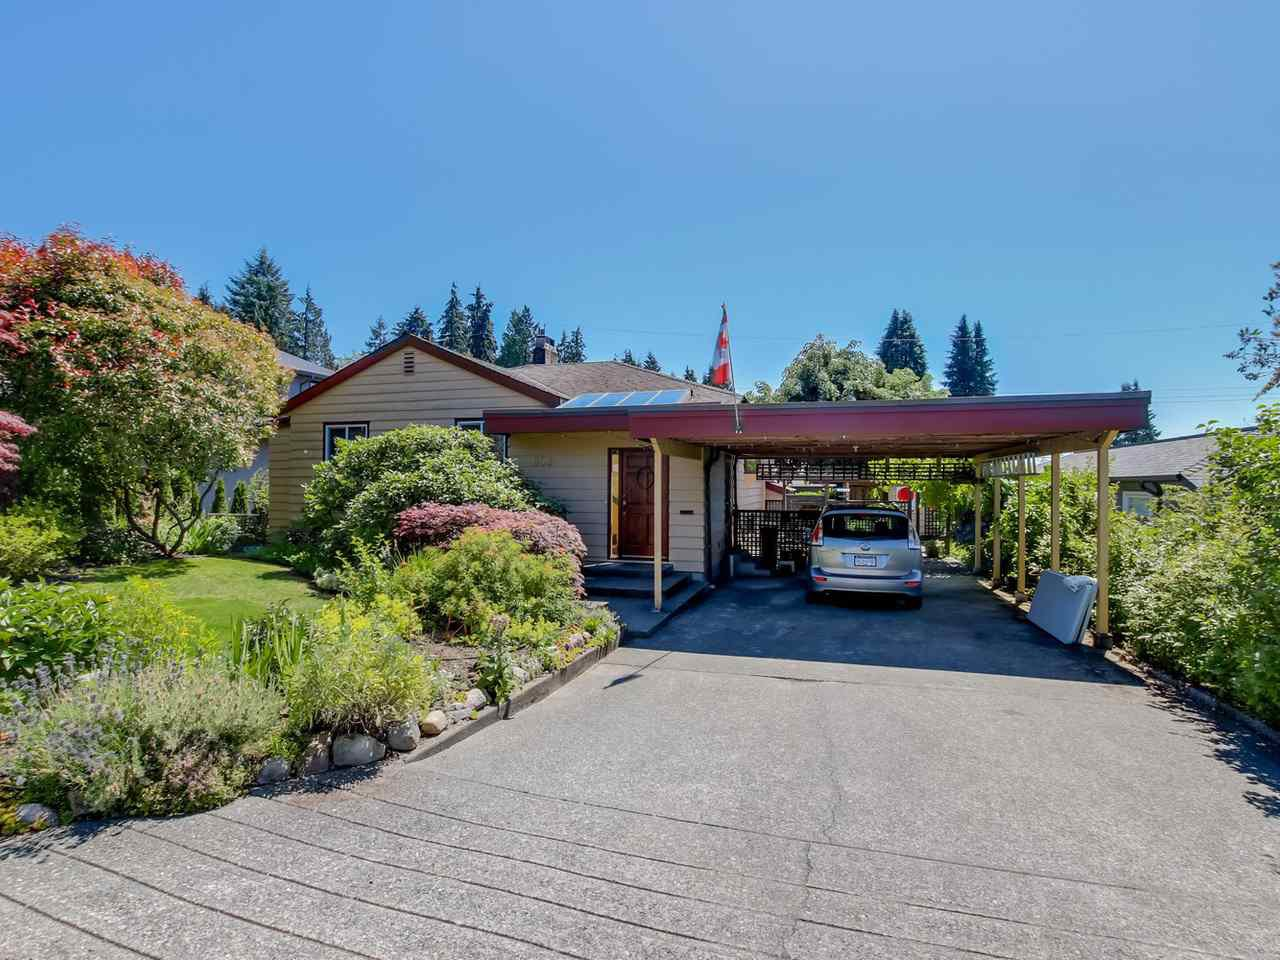 """Main Photo: 905 WENTWORTH Avenue in North Vancouver: Forest Hills NV House for sale in """"Forest Hills"""" : MLS®# R2086754"""